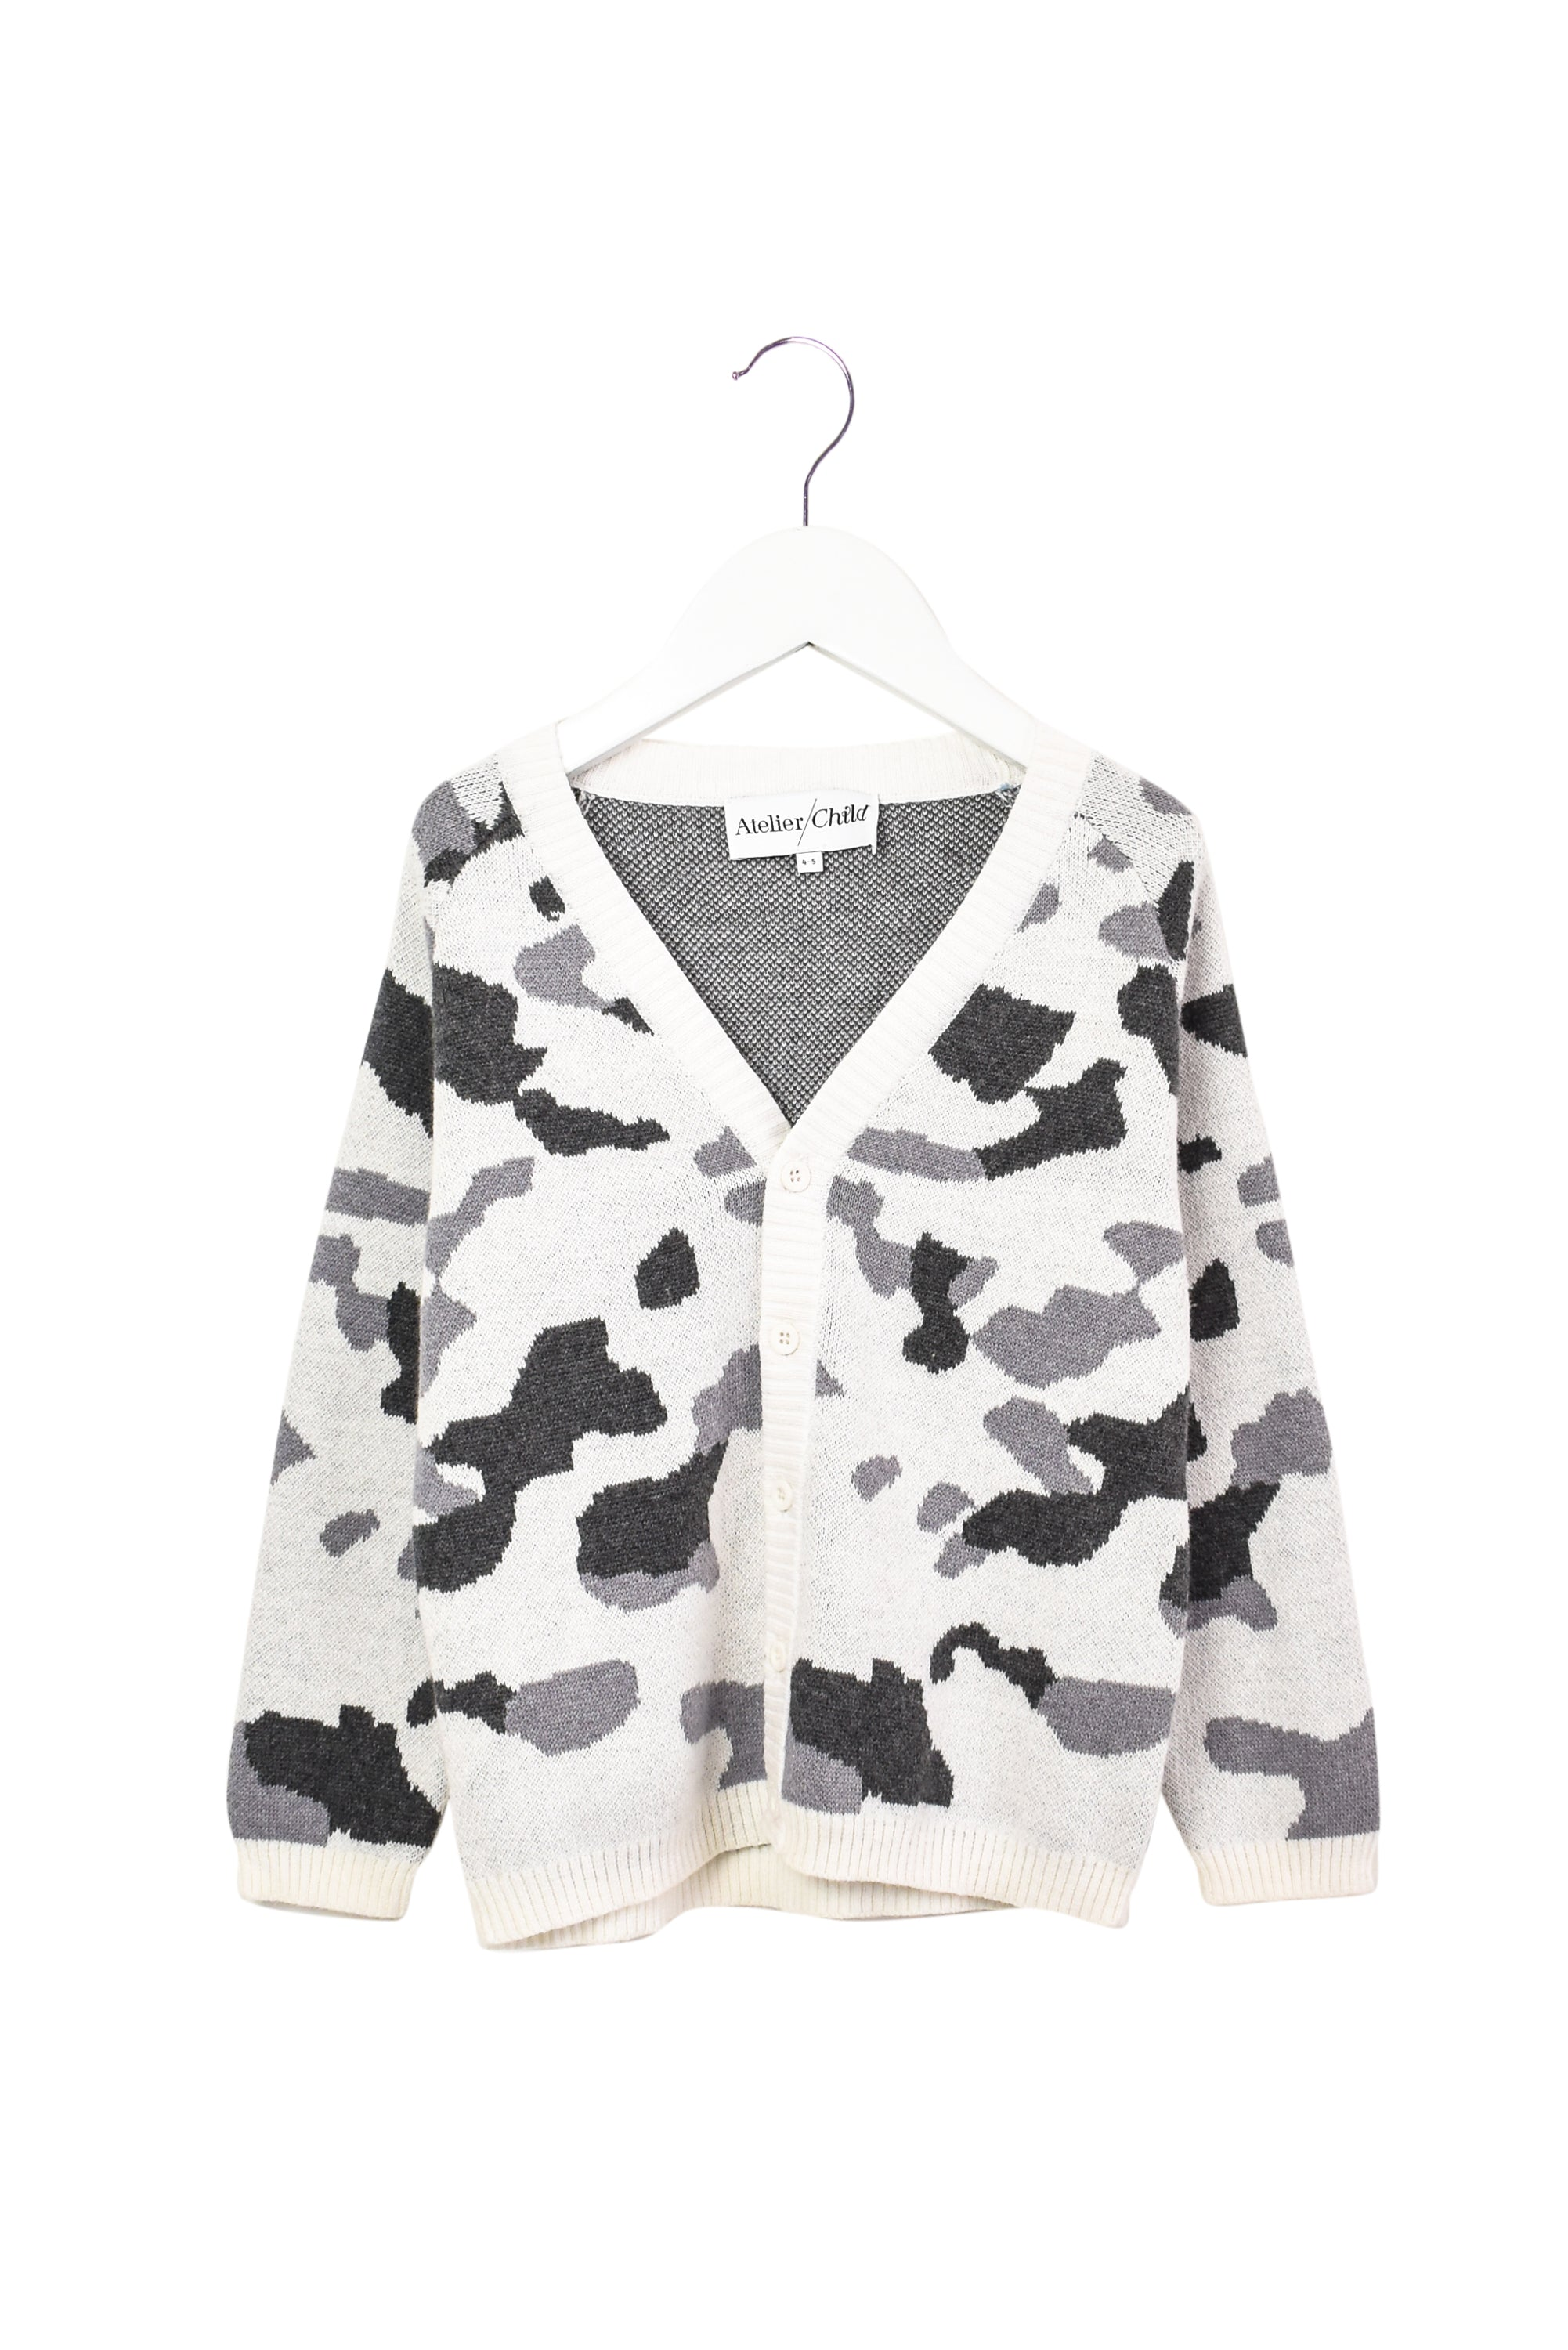 10007671 Atelier Child Kids ~ Cardigan 4-5T at Retykle